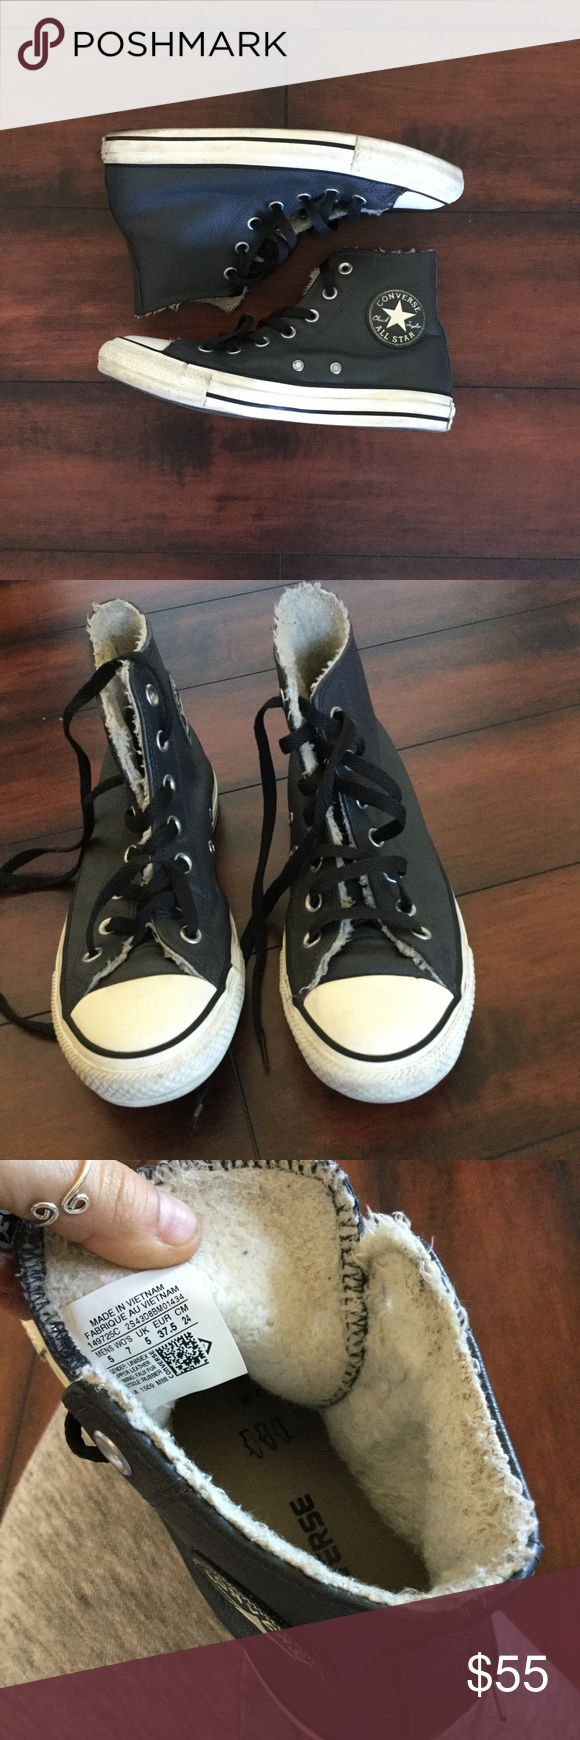 Leather Converse Leather Converse. Great condition. Inside has a warm fuzzy shearling type lining. Very comfy and warm. Converse Shoes Sneakers